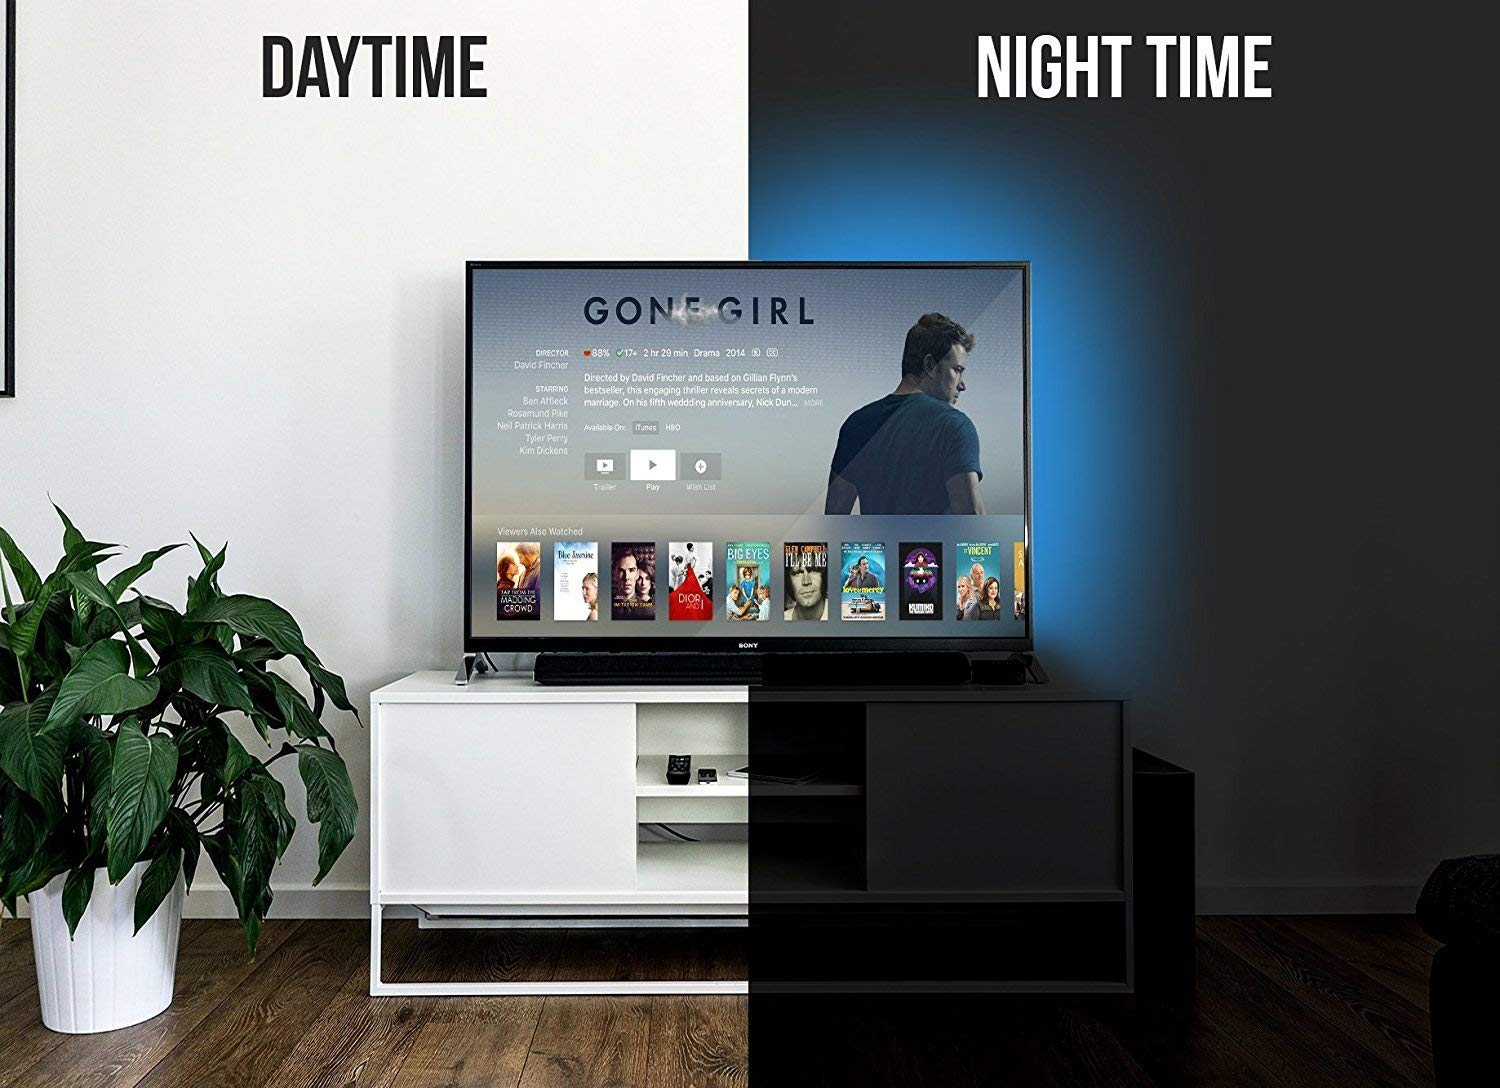 usb led lighting strip for hdtv small triller accent table target multi color rgb backlight with dimmer flat screen lcd sage green bedside drop leaf tables spaces decorative